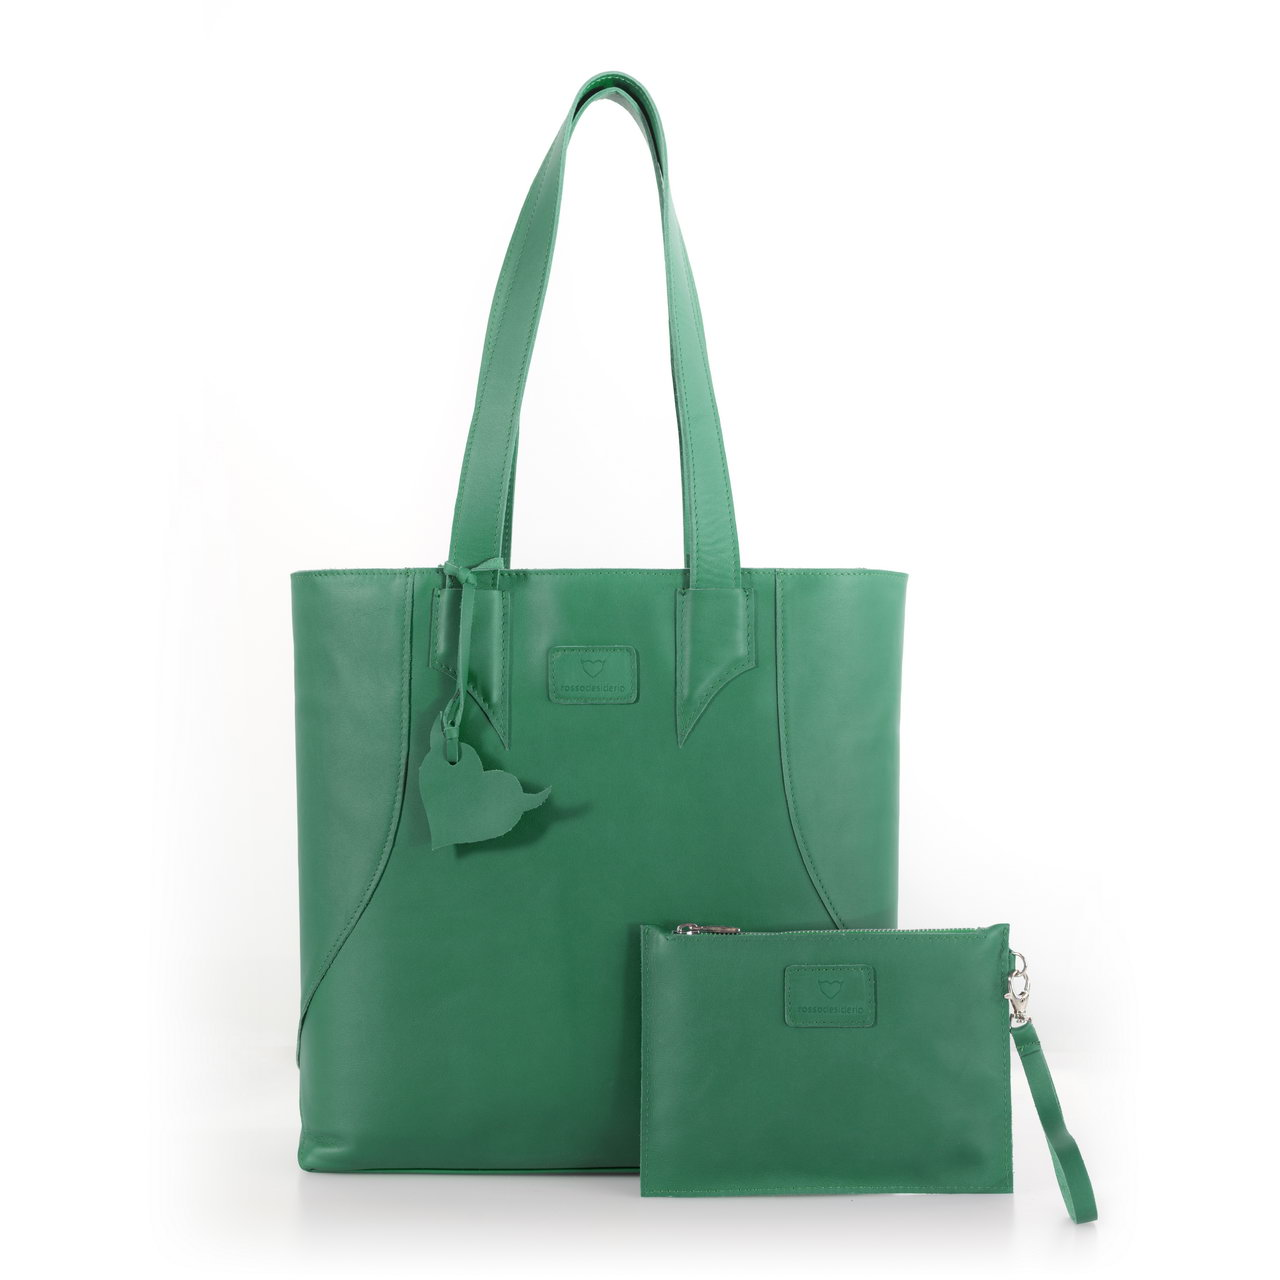 Brava Green, shopper bag made with real leather